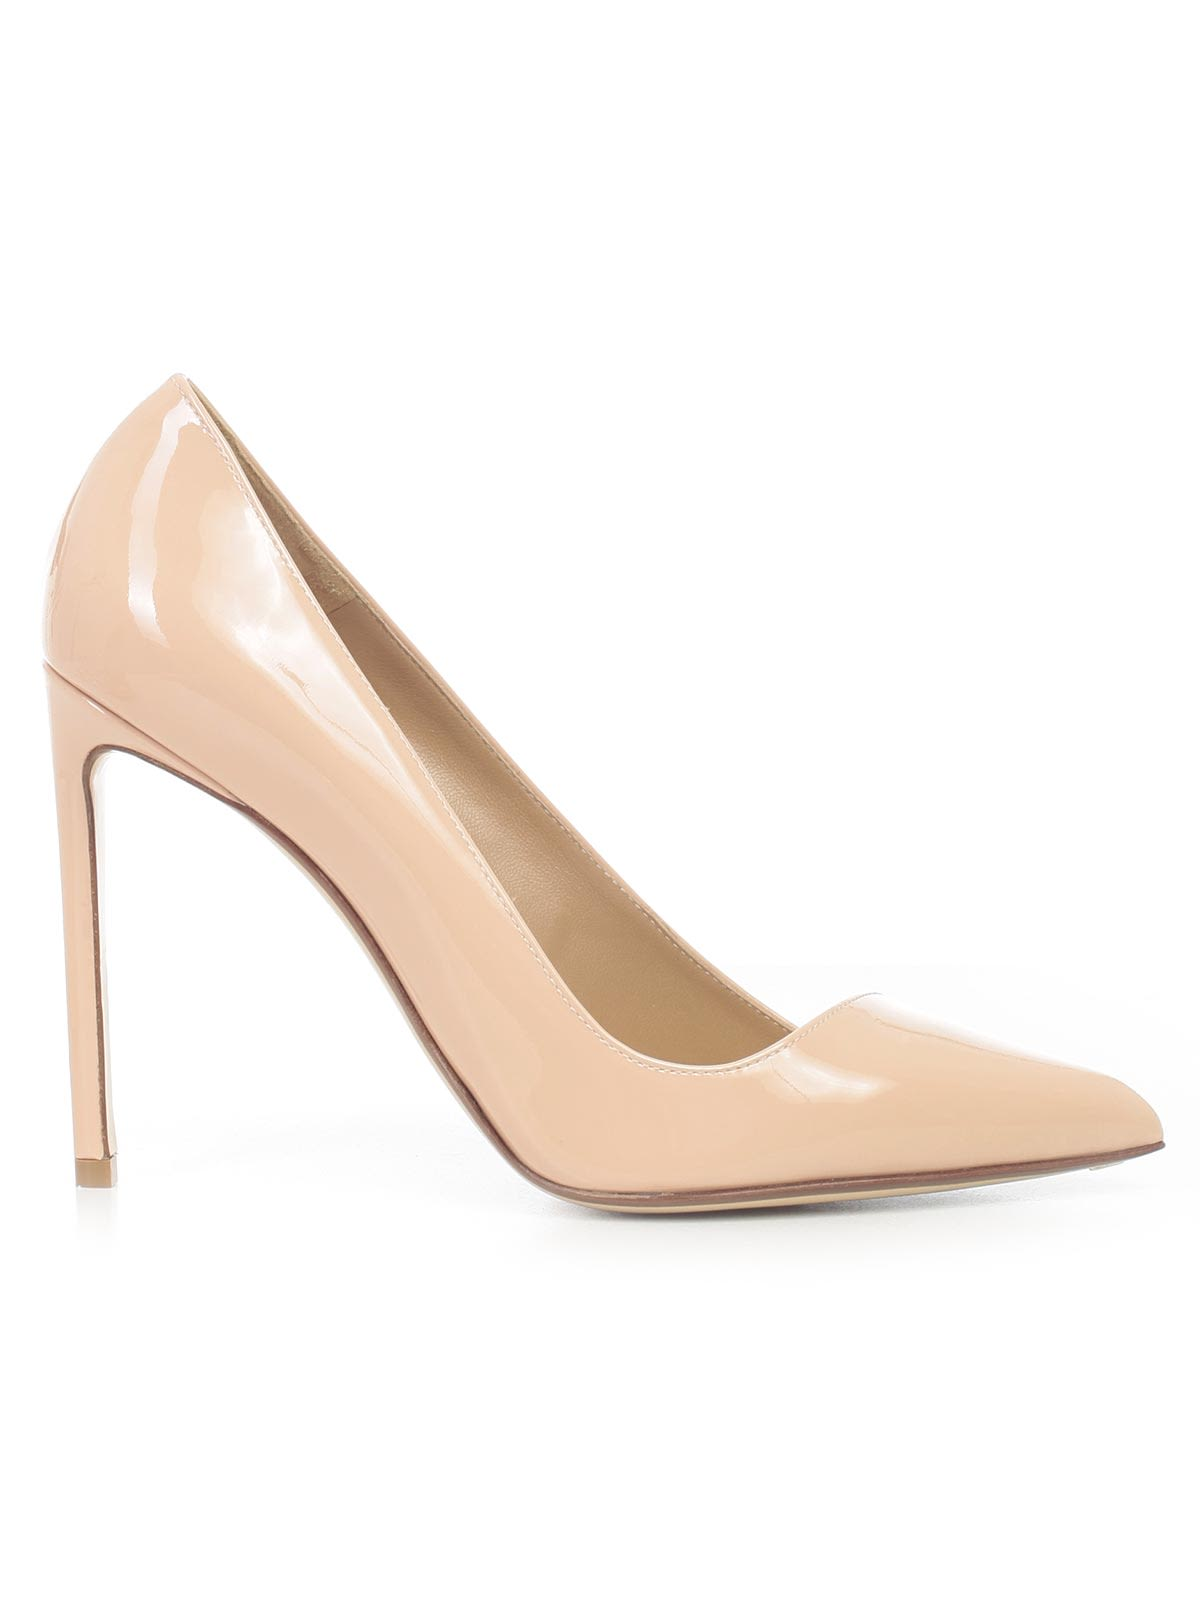 Asymmetric Line Pumps, Nude